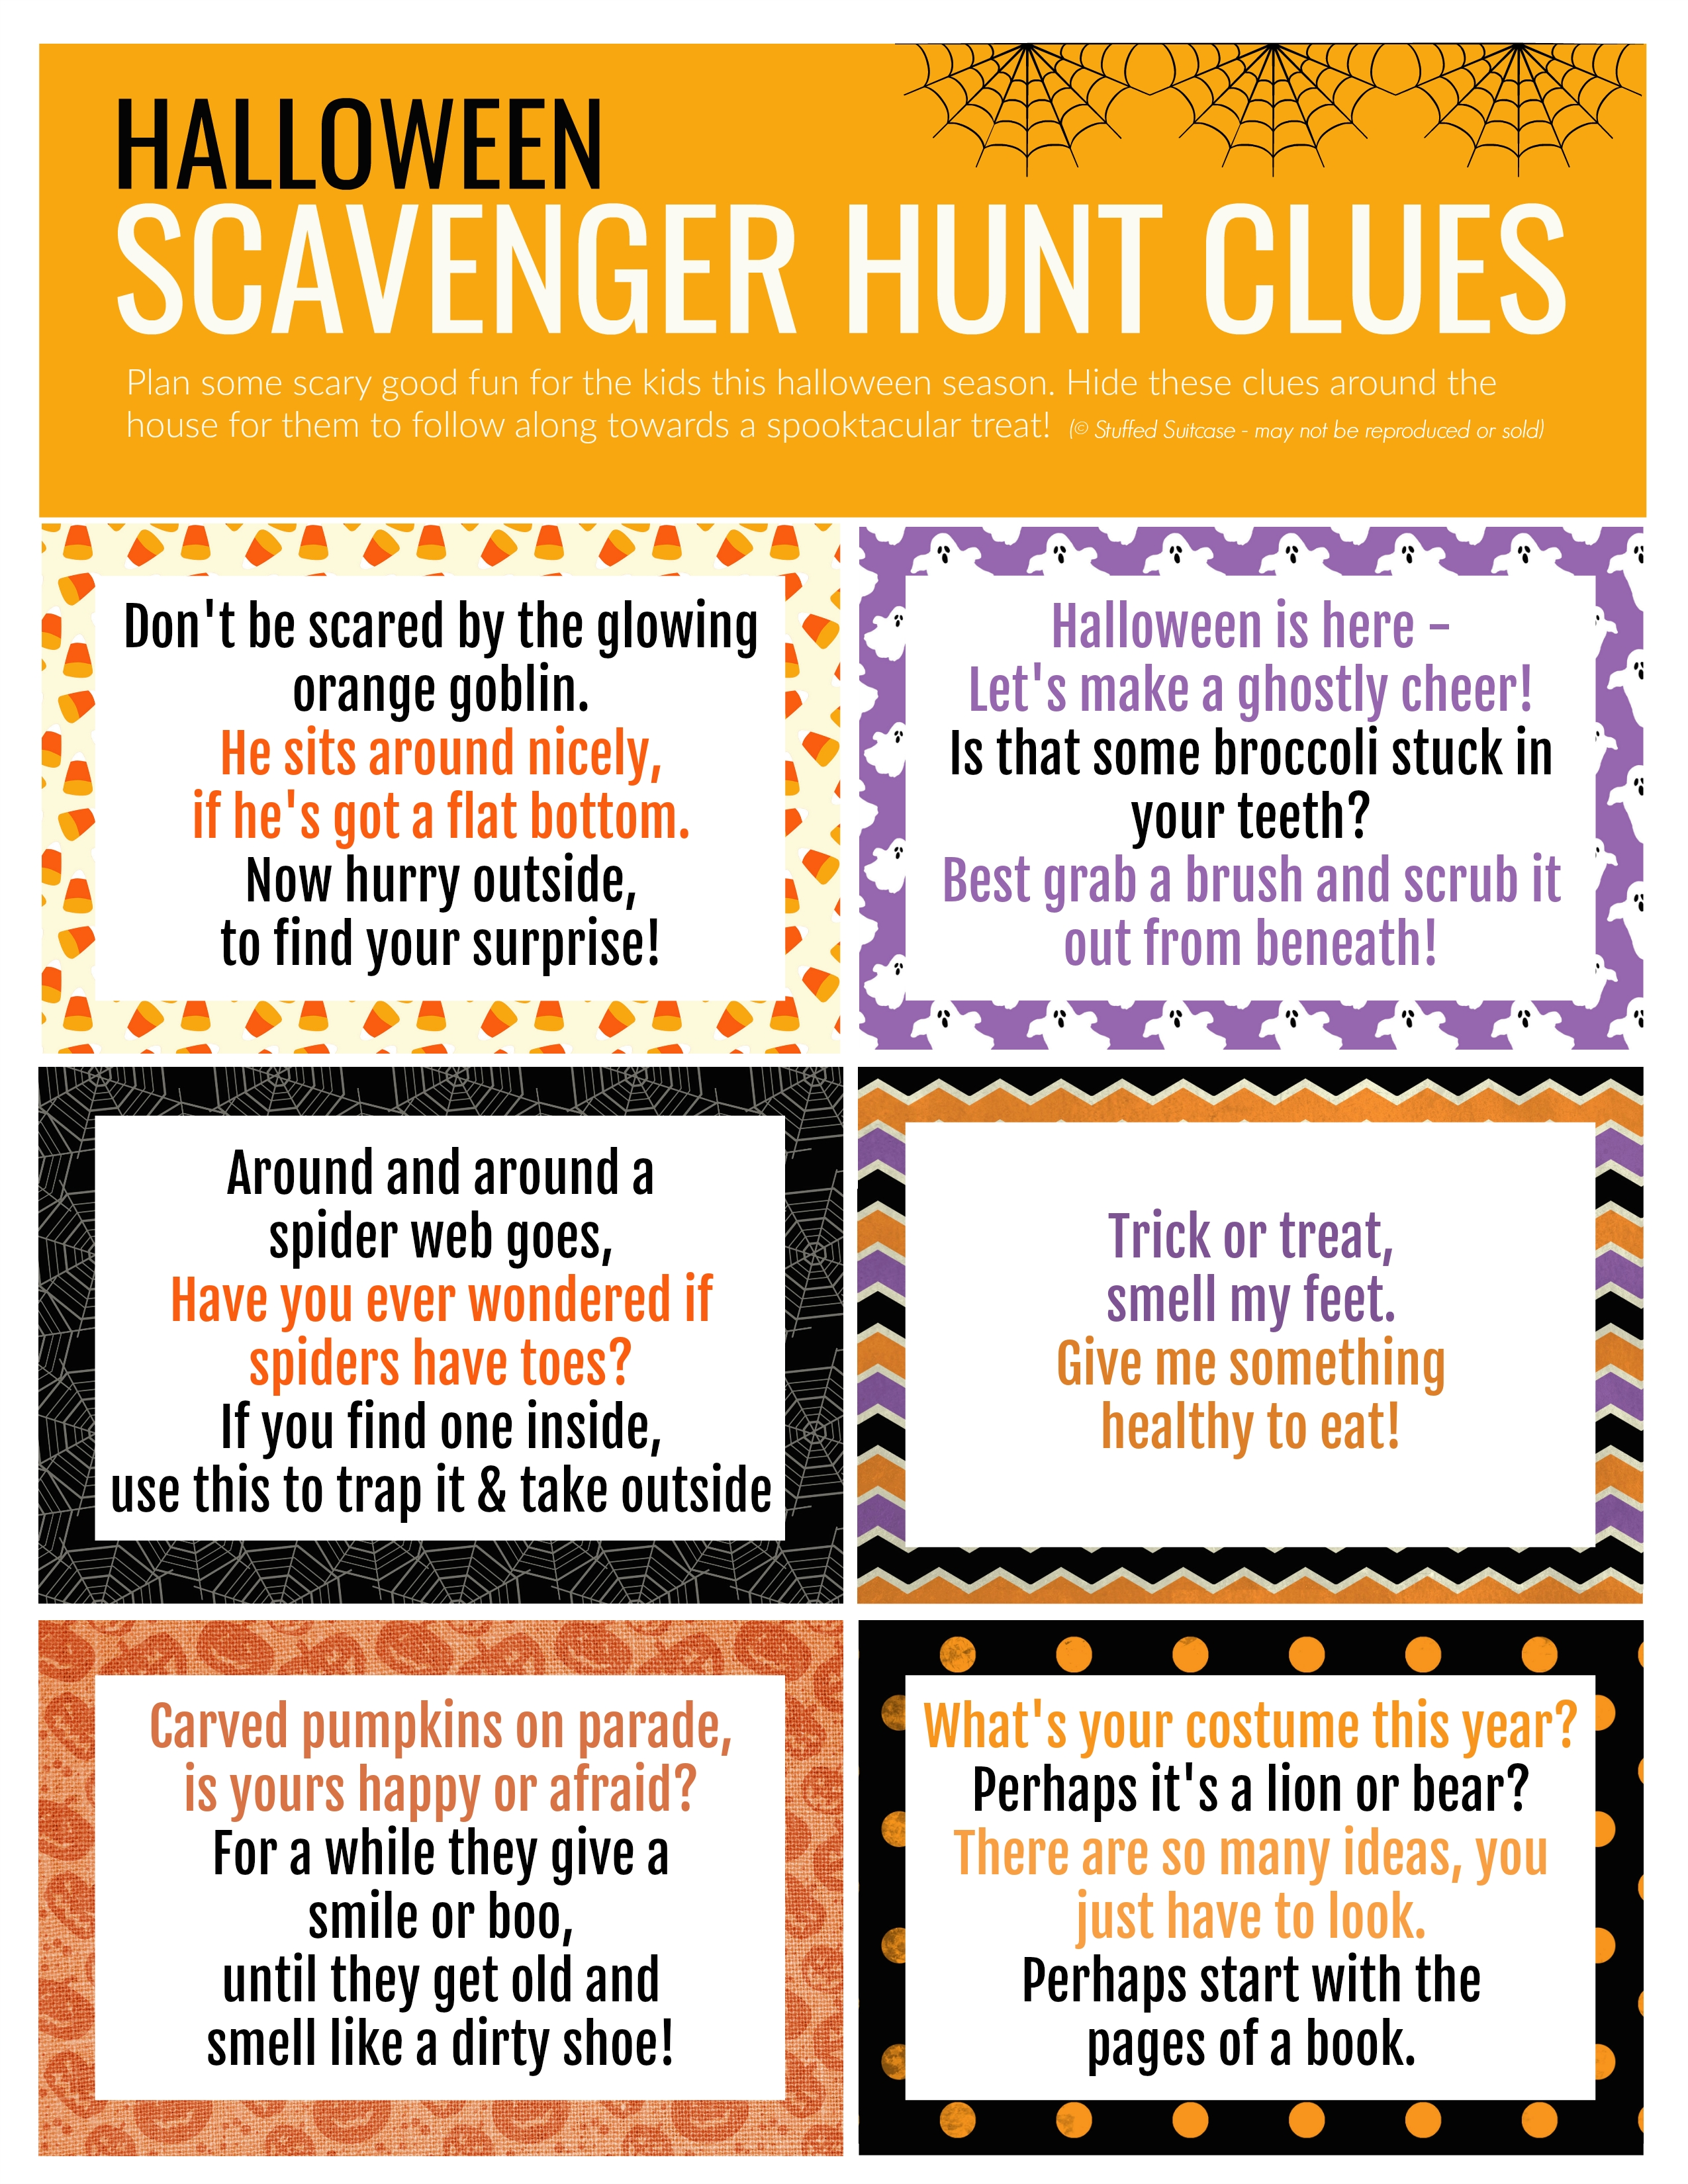 10 Great Scavenger Hunt Ideas For Adults Outside halloween scavenger hunt how to plan a surprise for your kids 2 2021